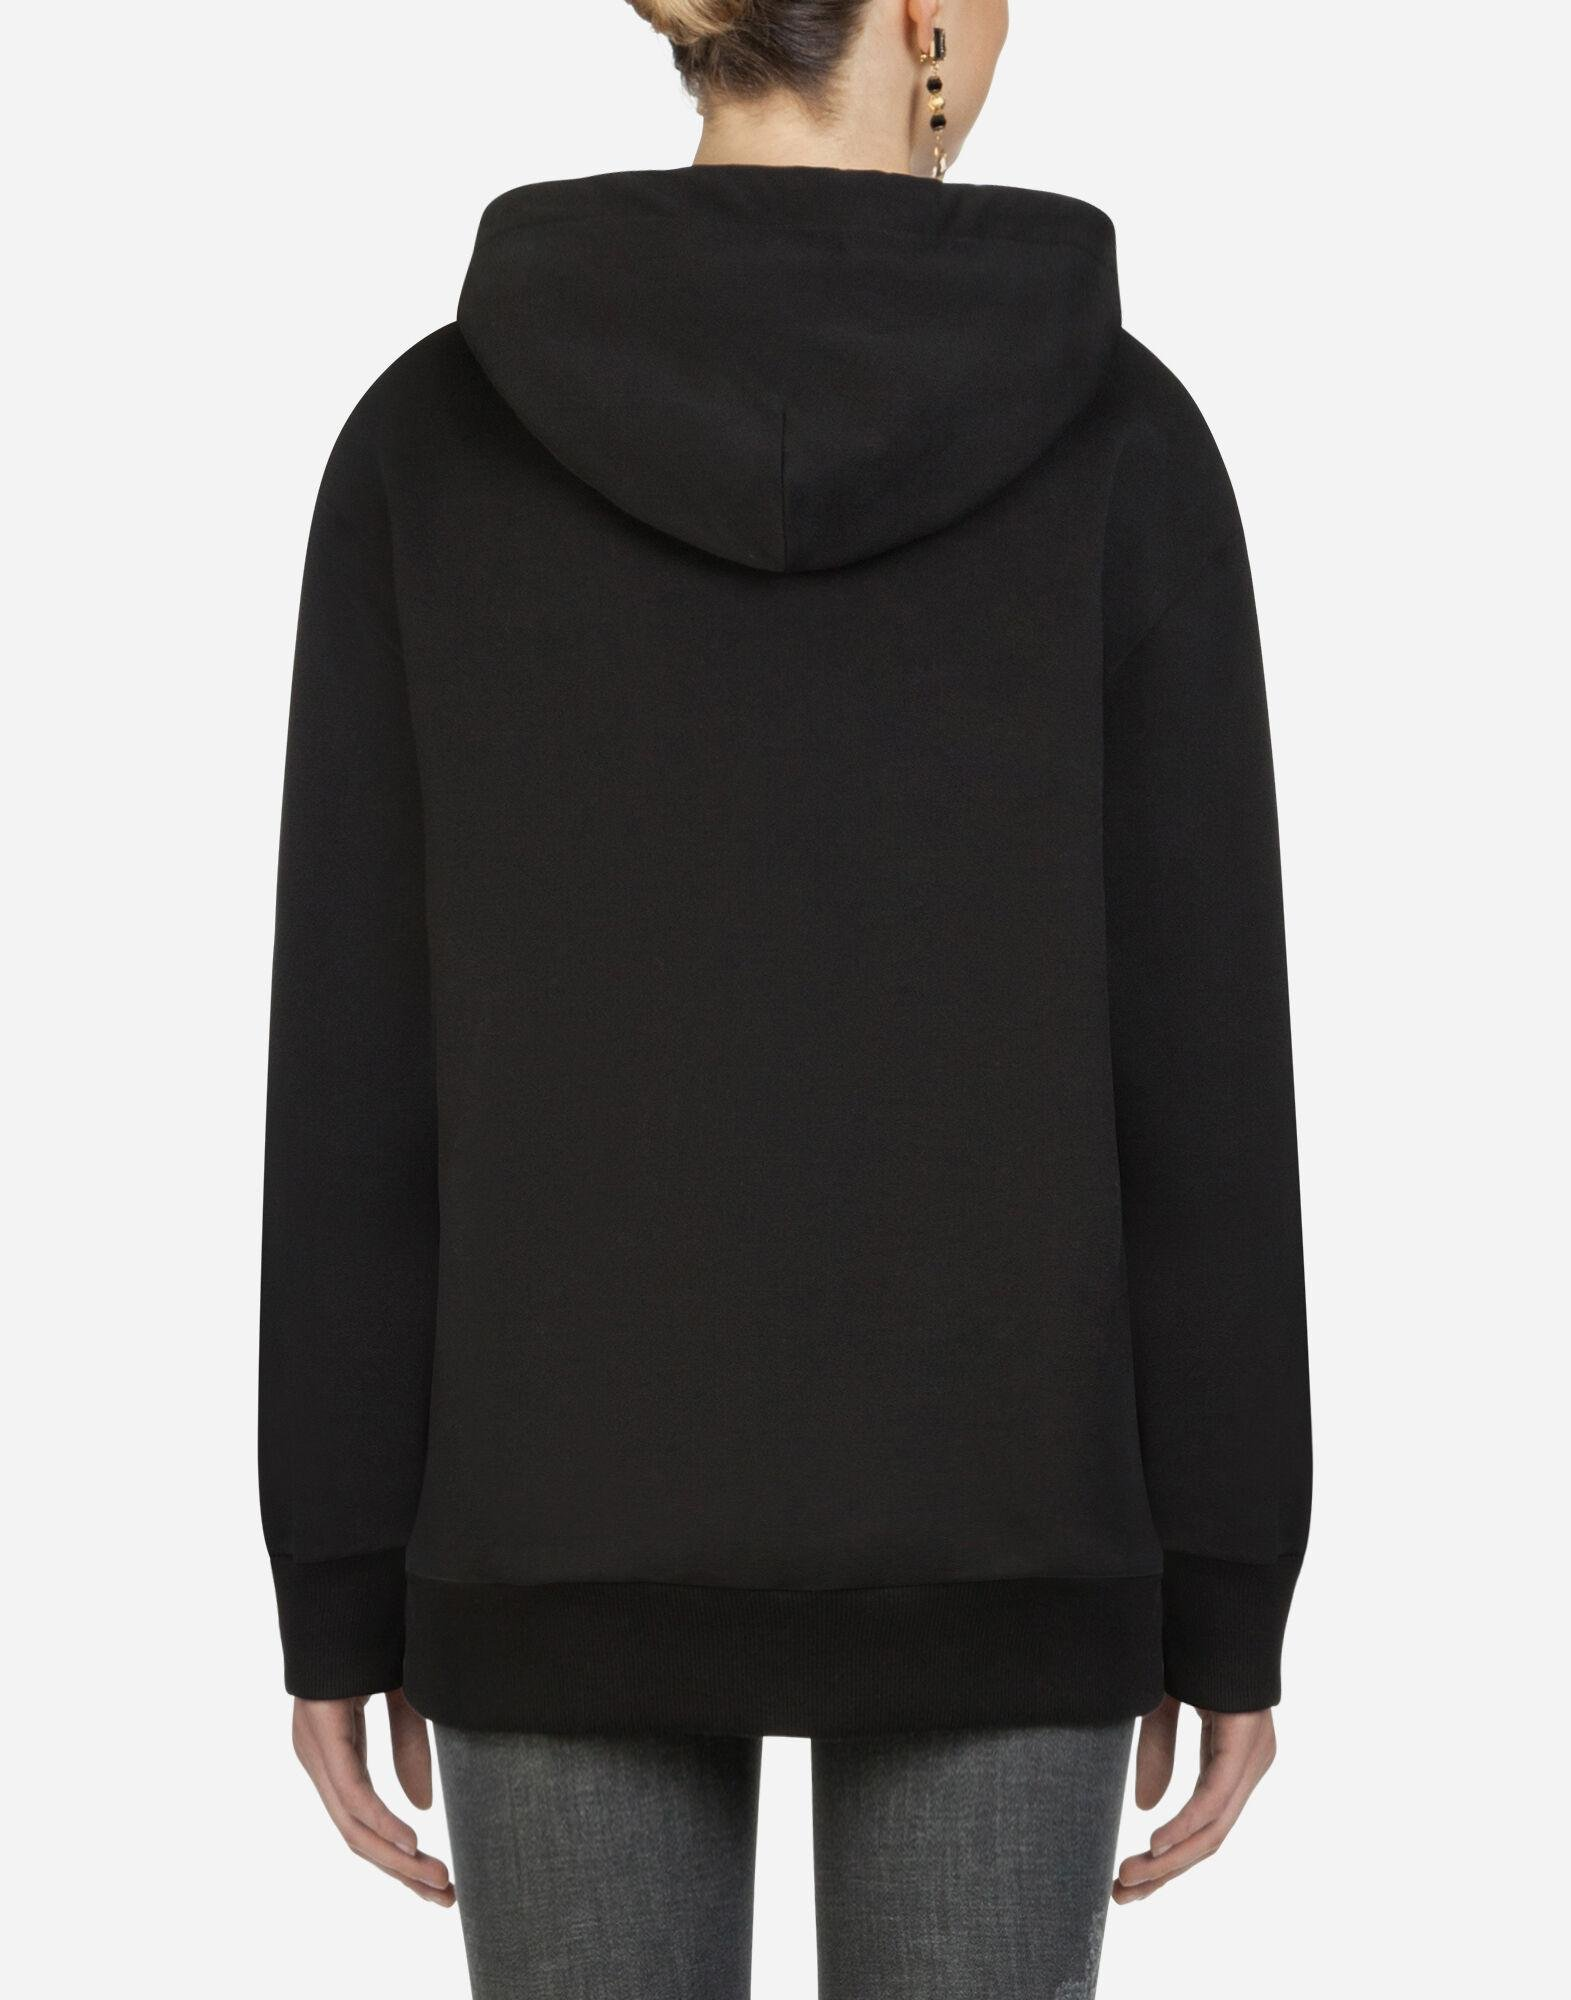 Hoodie with patches of the designers 1